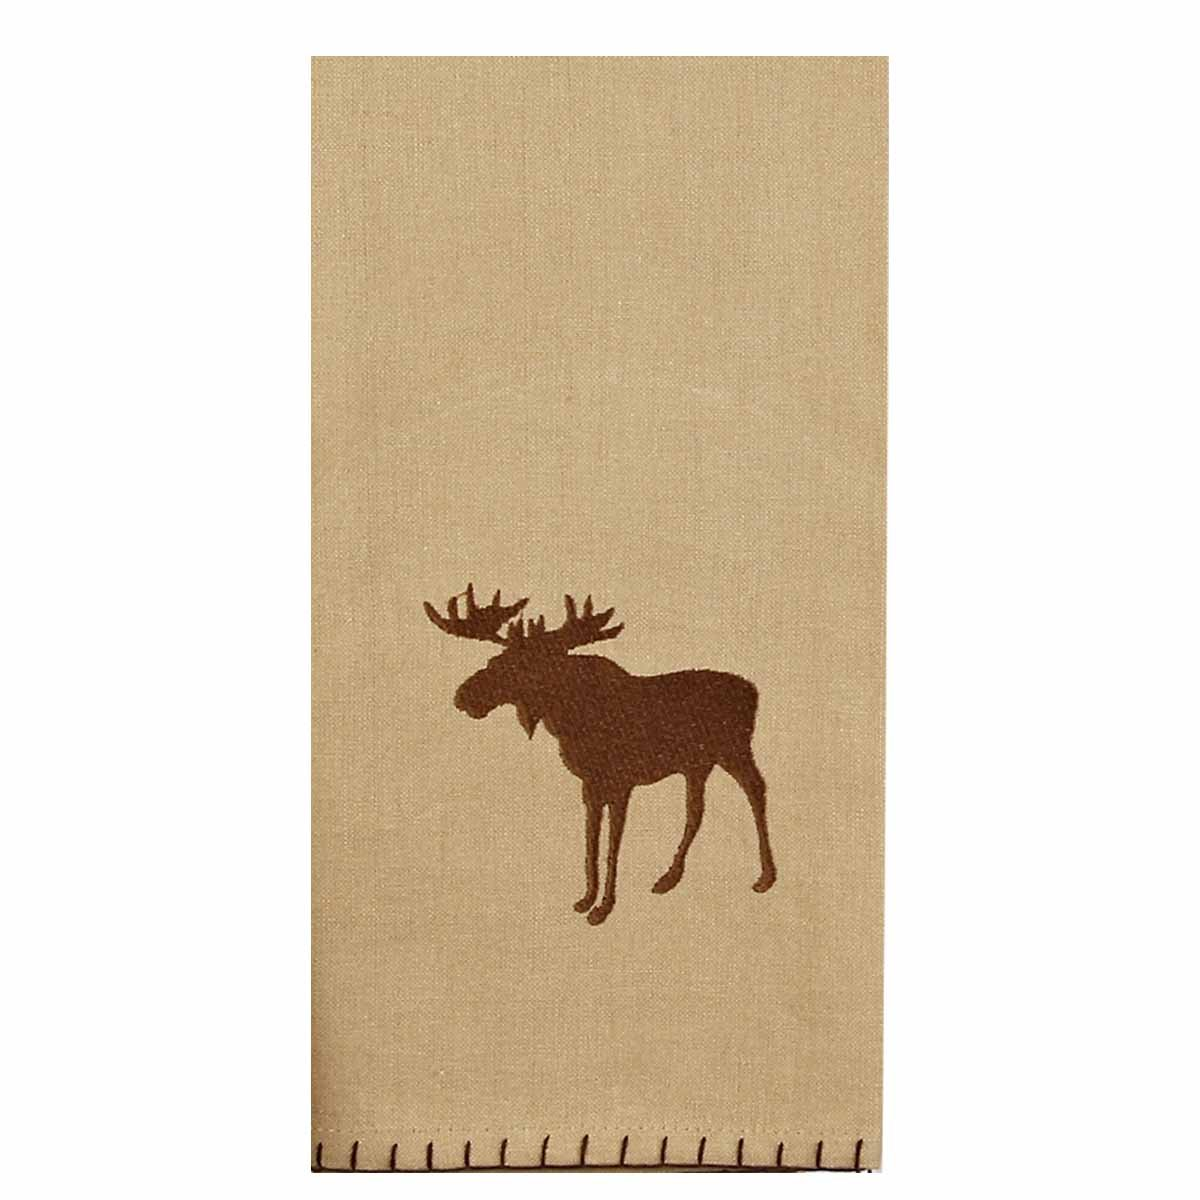 Home Collection by Raghu ETRE0162 Cabin Country Moose Lodge Towel, 18'' x 28''